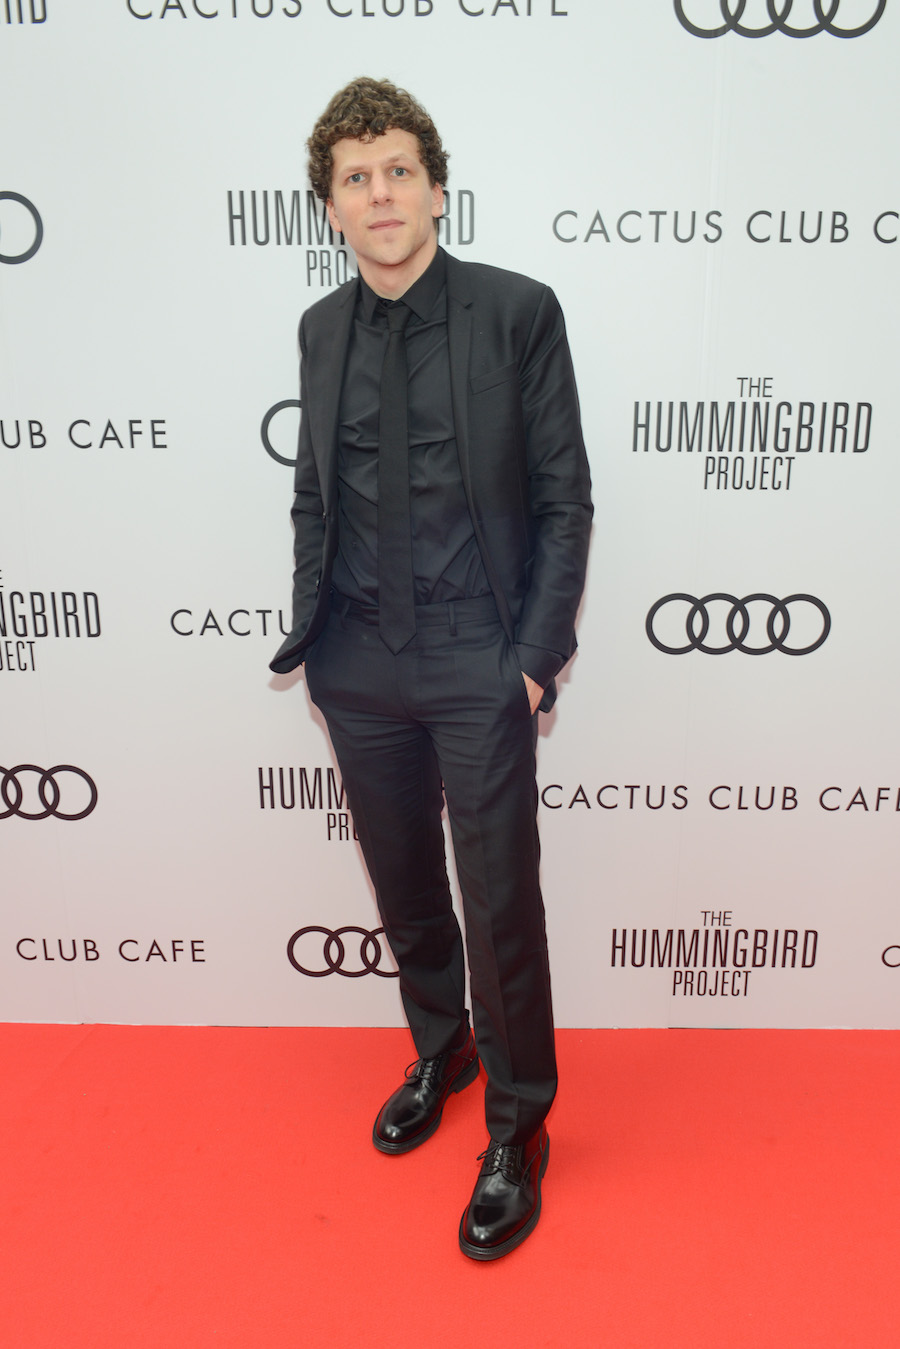 Jesse Eisenberg at 'The Hummingbird Project' premiere party hosted by Cactus Club Cafe at First Canadian Place. (Photo: George Pimentel/Getty Images for Cactus Club Cafe) | View the VIBE